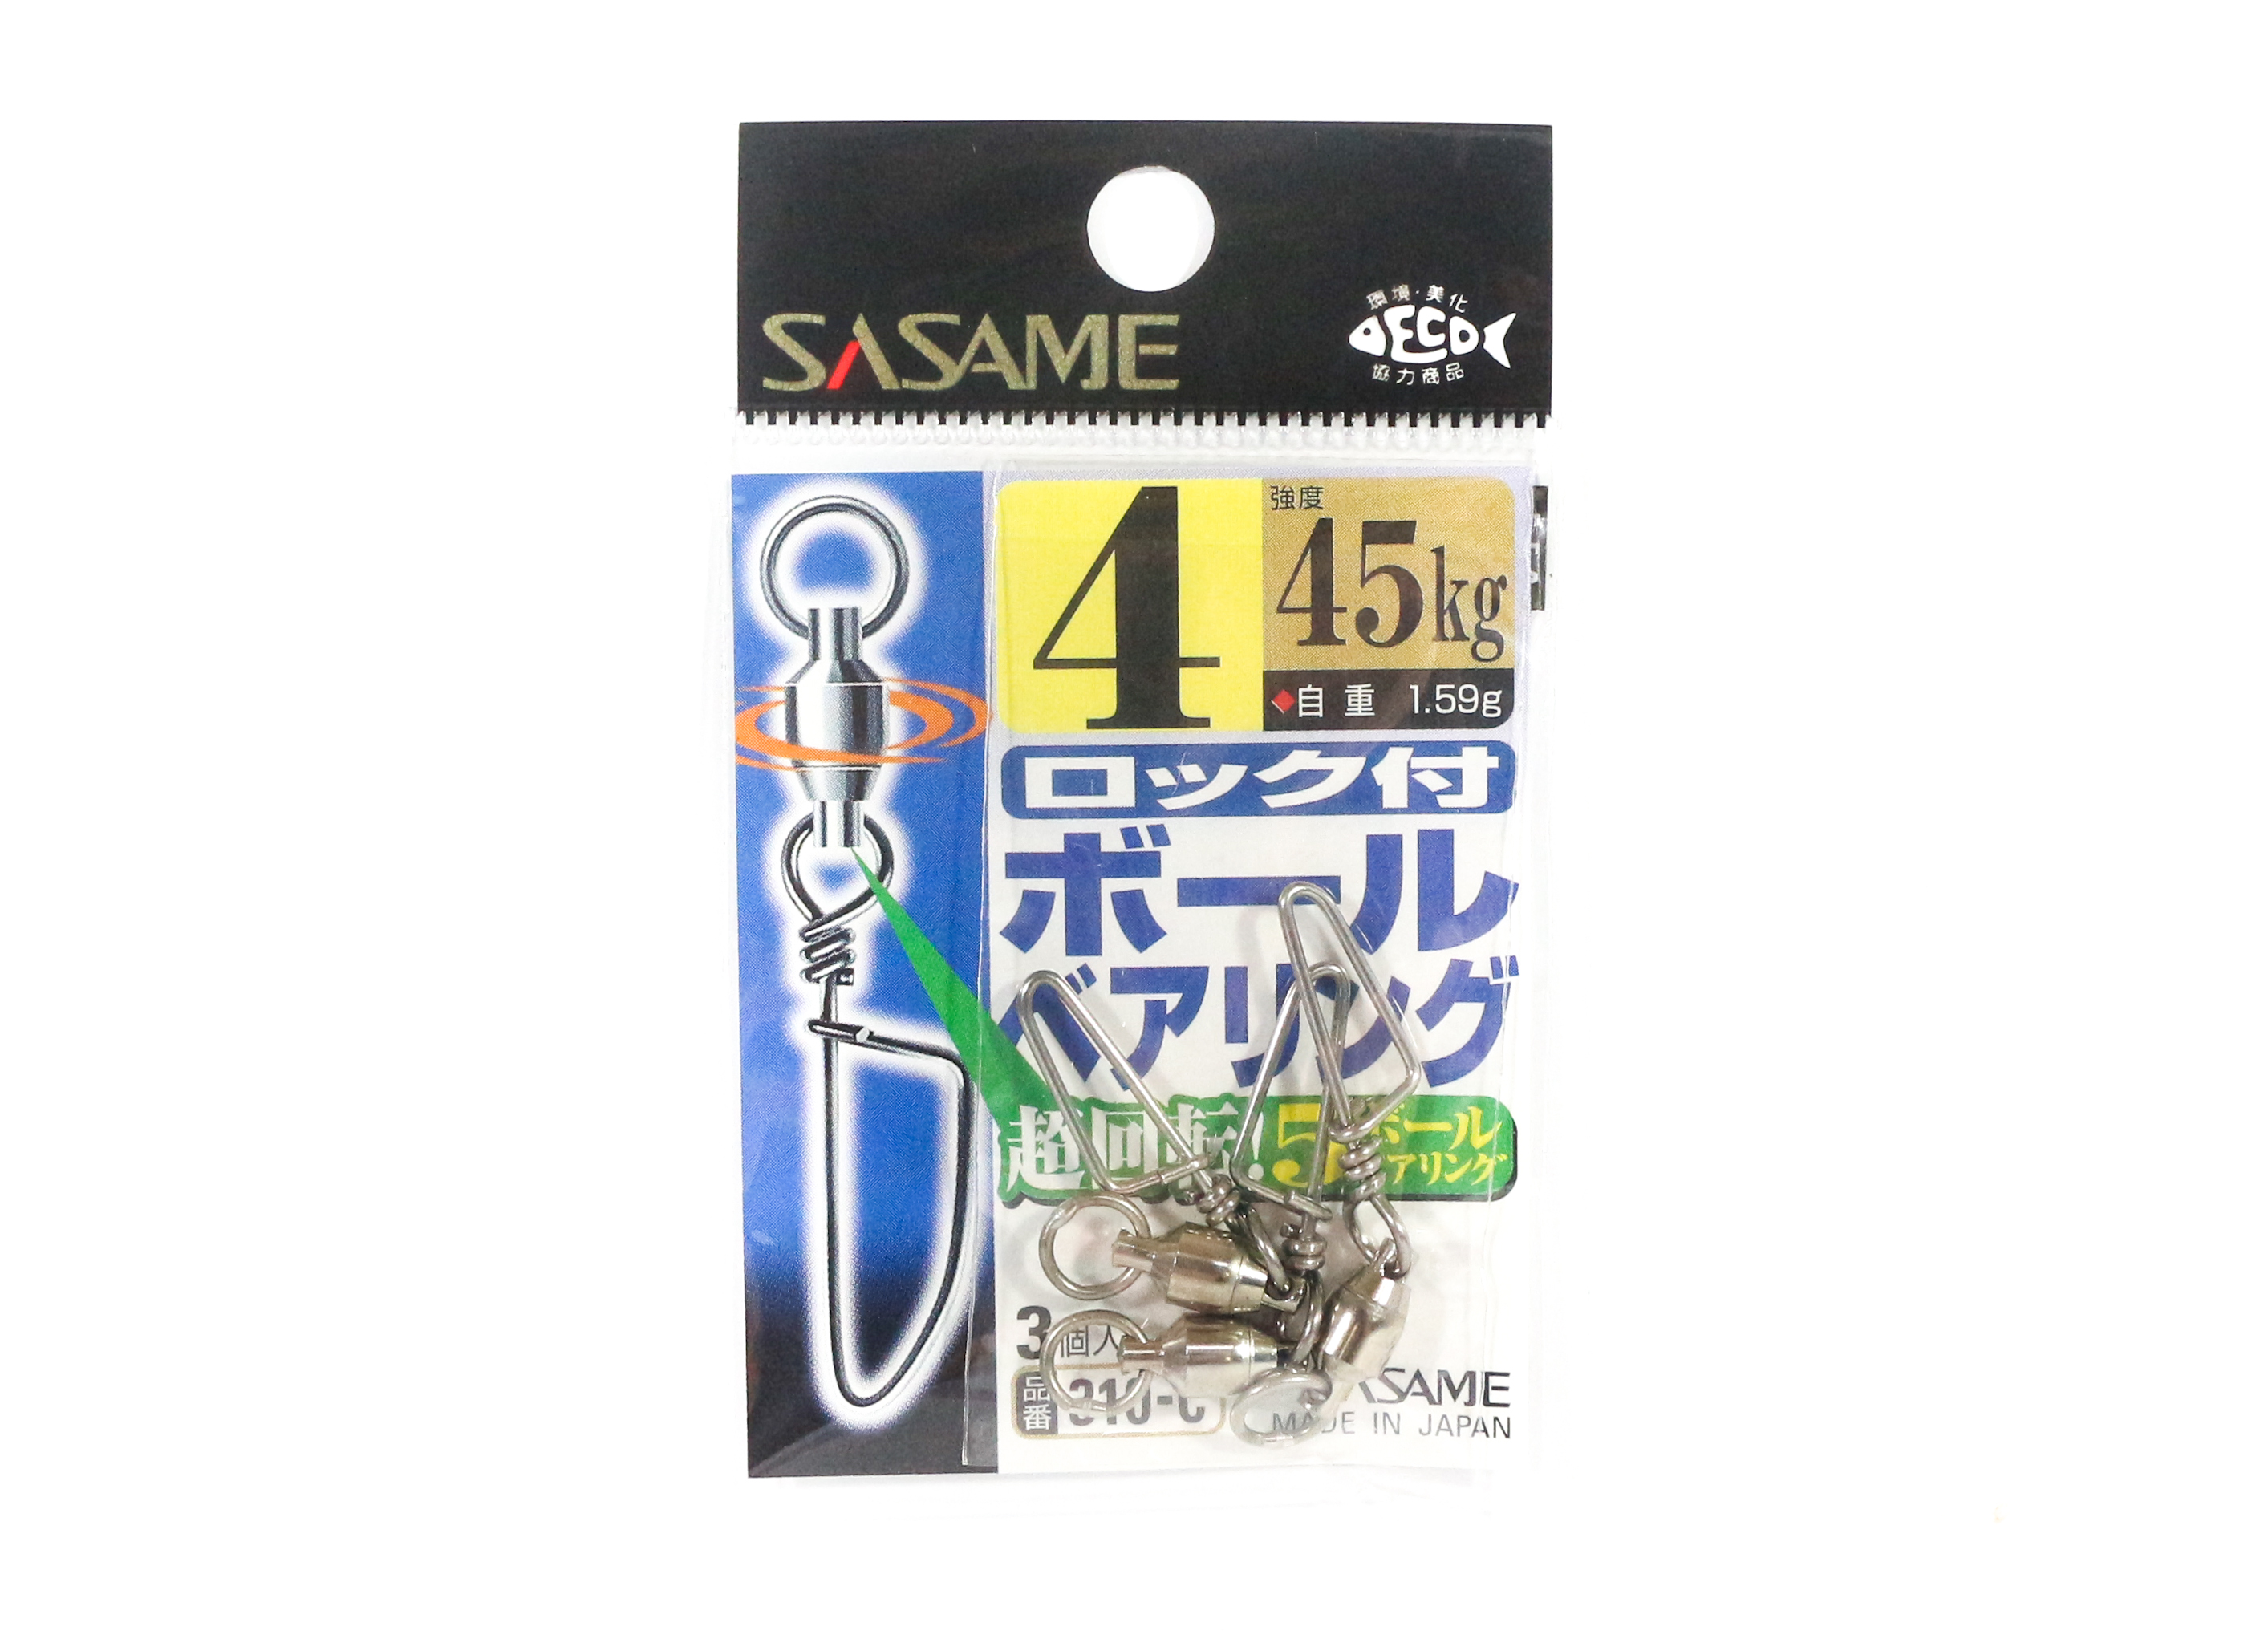 Sasame 310-C Ball Bearing Snap Swivels High Quality Size 4 (1713)